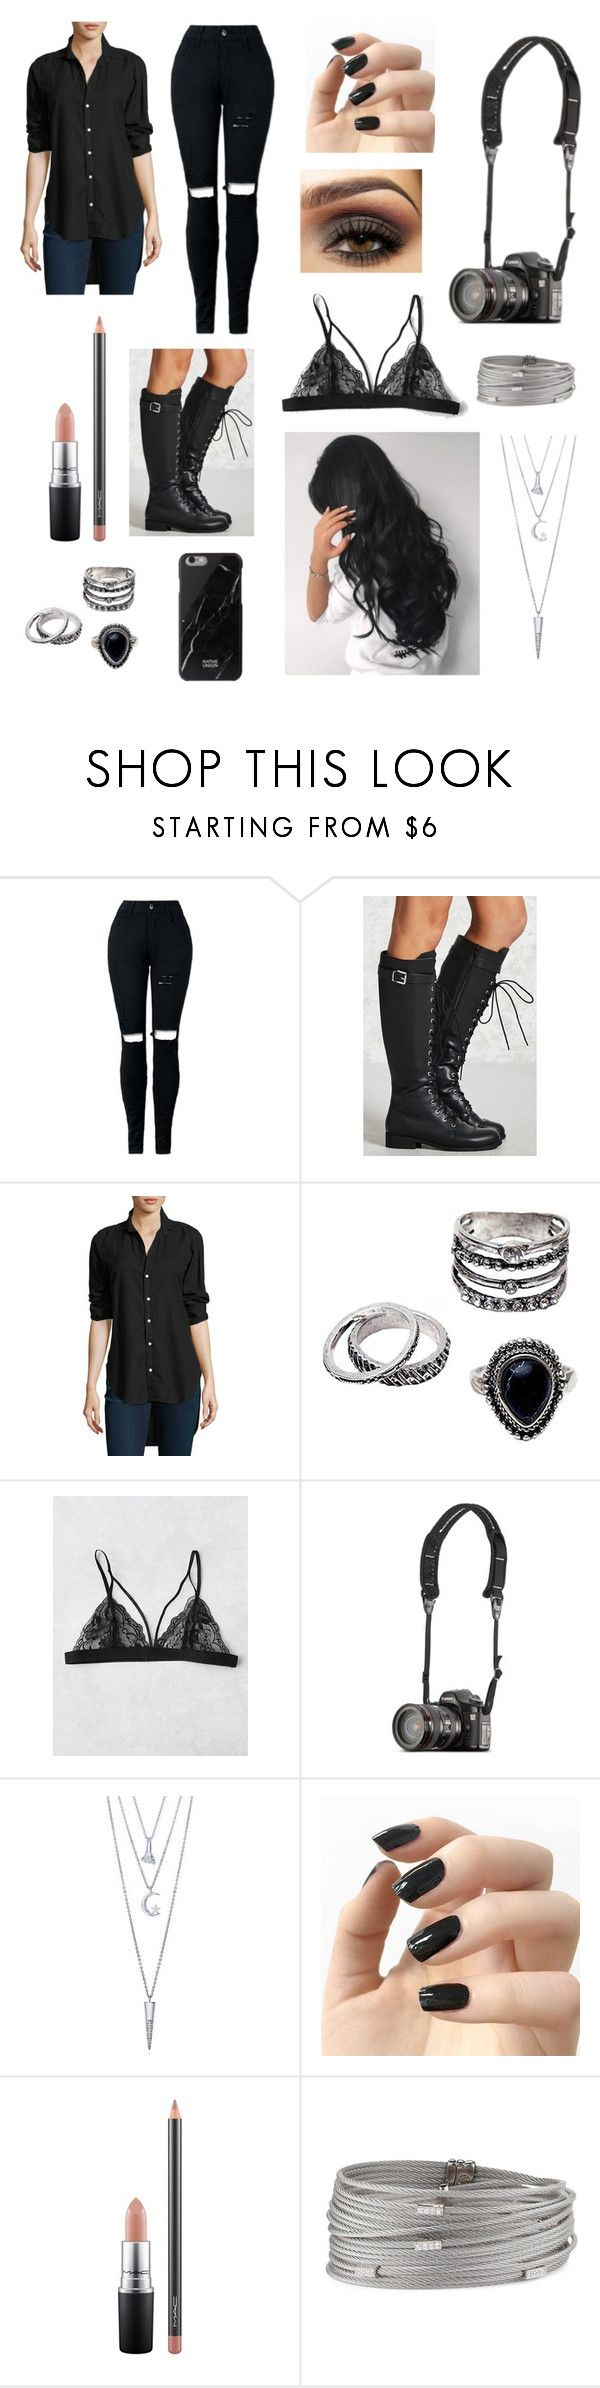 """Edgy work outfit"" by taylor-anne-moore ❤ liked on Polyvore featuring Forever 21, Frank & Eileen, BERRICLE, Incoco, MAC Cosmetics and Alor"